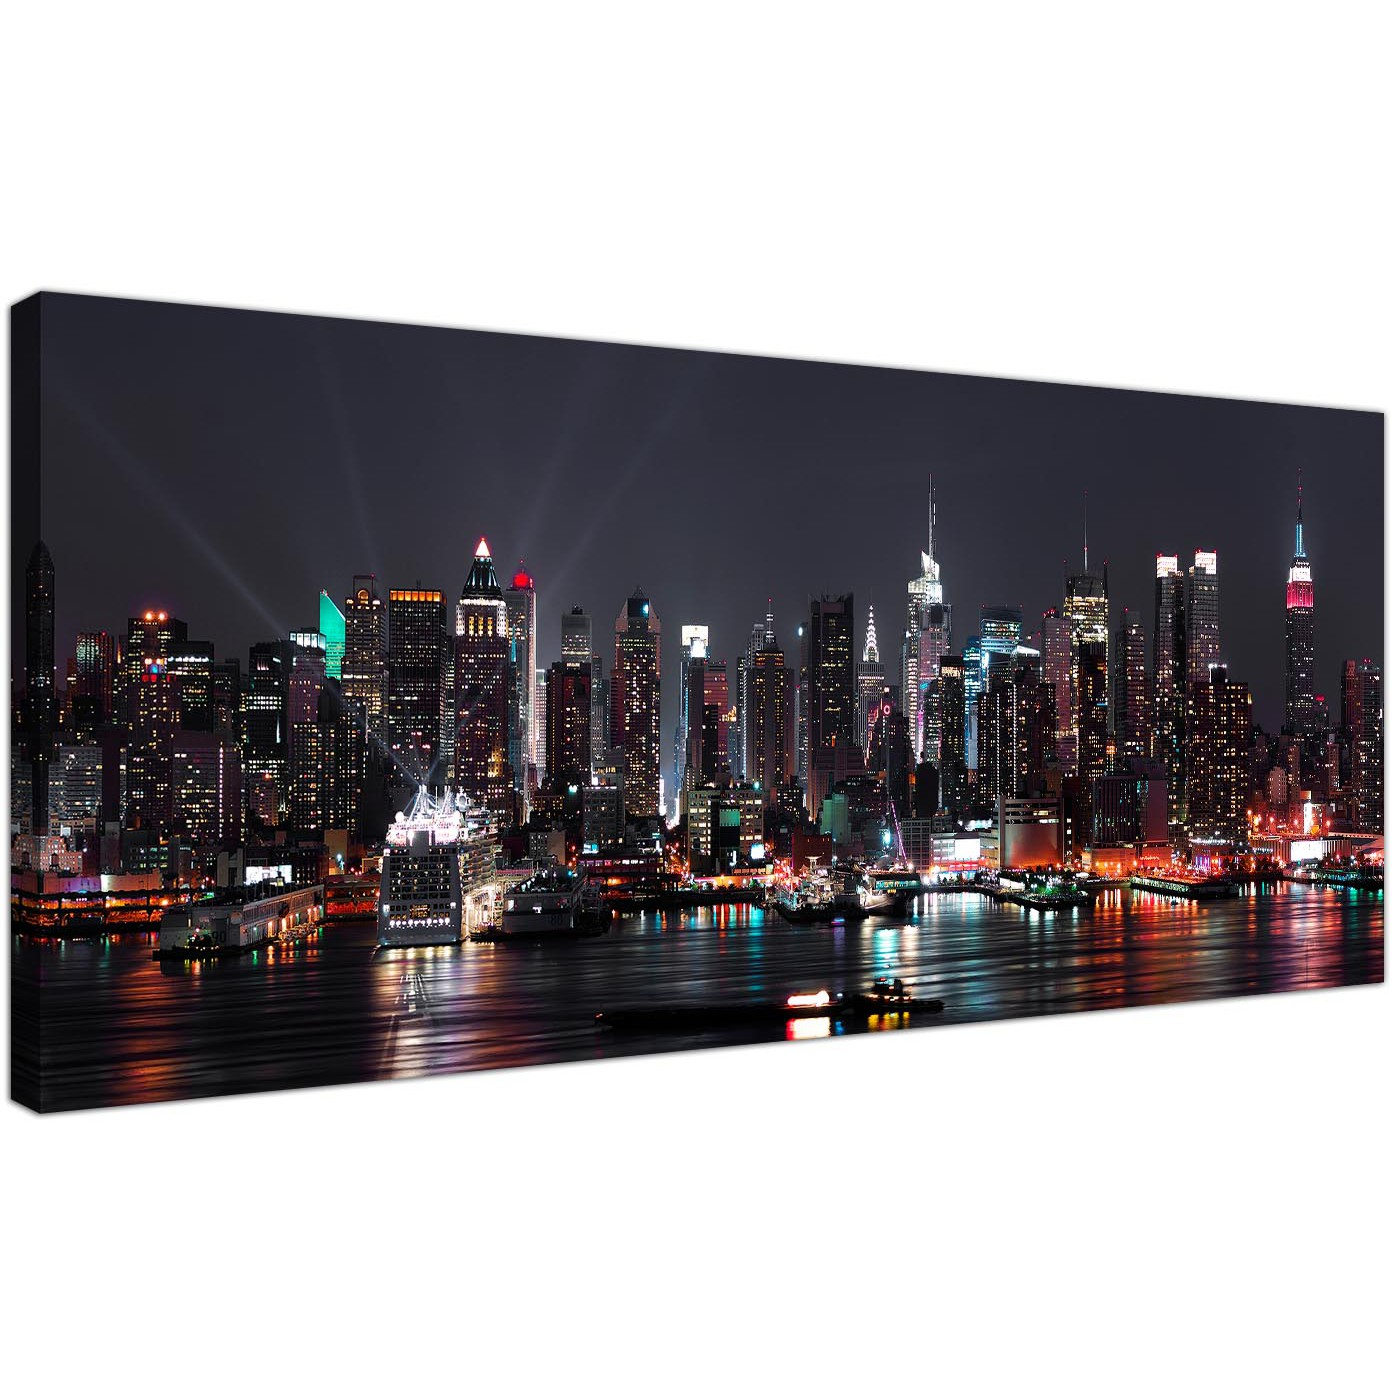 Large Framed Wall Art New York City Landscape Sunset: Cheap Canvas Prints Of The New York Skyline For Your Office